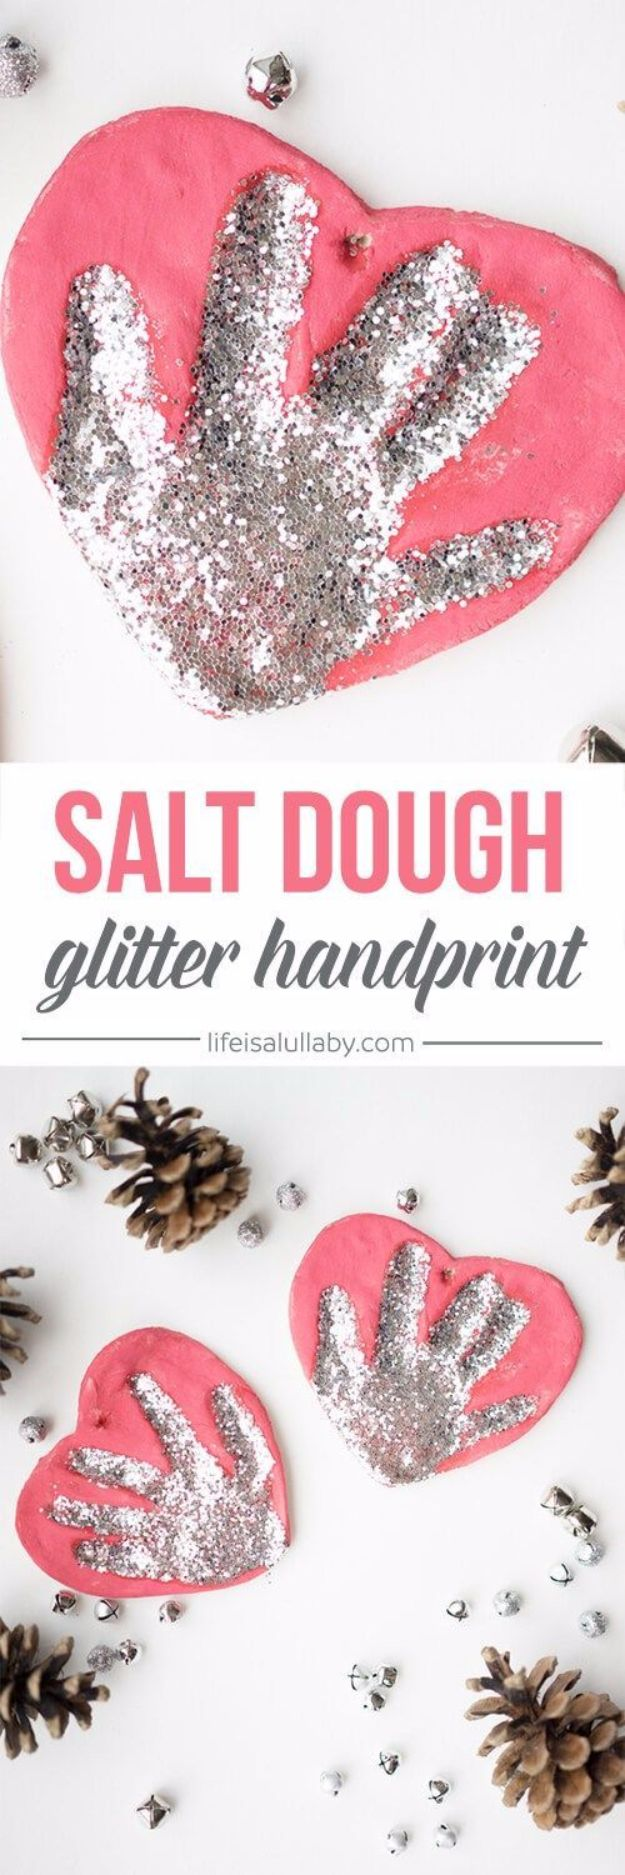 DIY Ideas WIth Glitter - Salt Dough Handprint Ornament - Easy Crafts and Projects for Decoration, Gifts, and Bedroom Decor - How To Make Ombre, Mod Podge and Glitter Mason Jar Gift Ideas For Teens - Easy Clothes and Makeup Crafts For Teenagers http://diyprojectsforteens.com/glitter-crafts-ideas